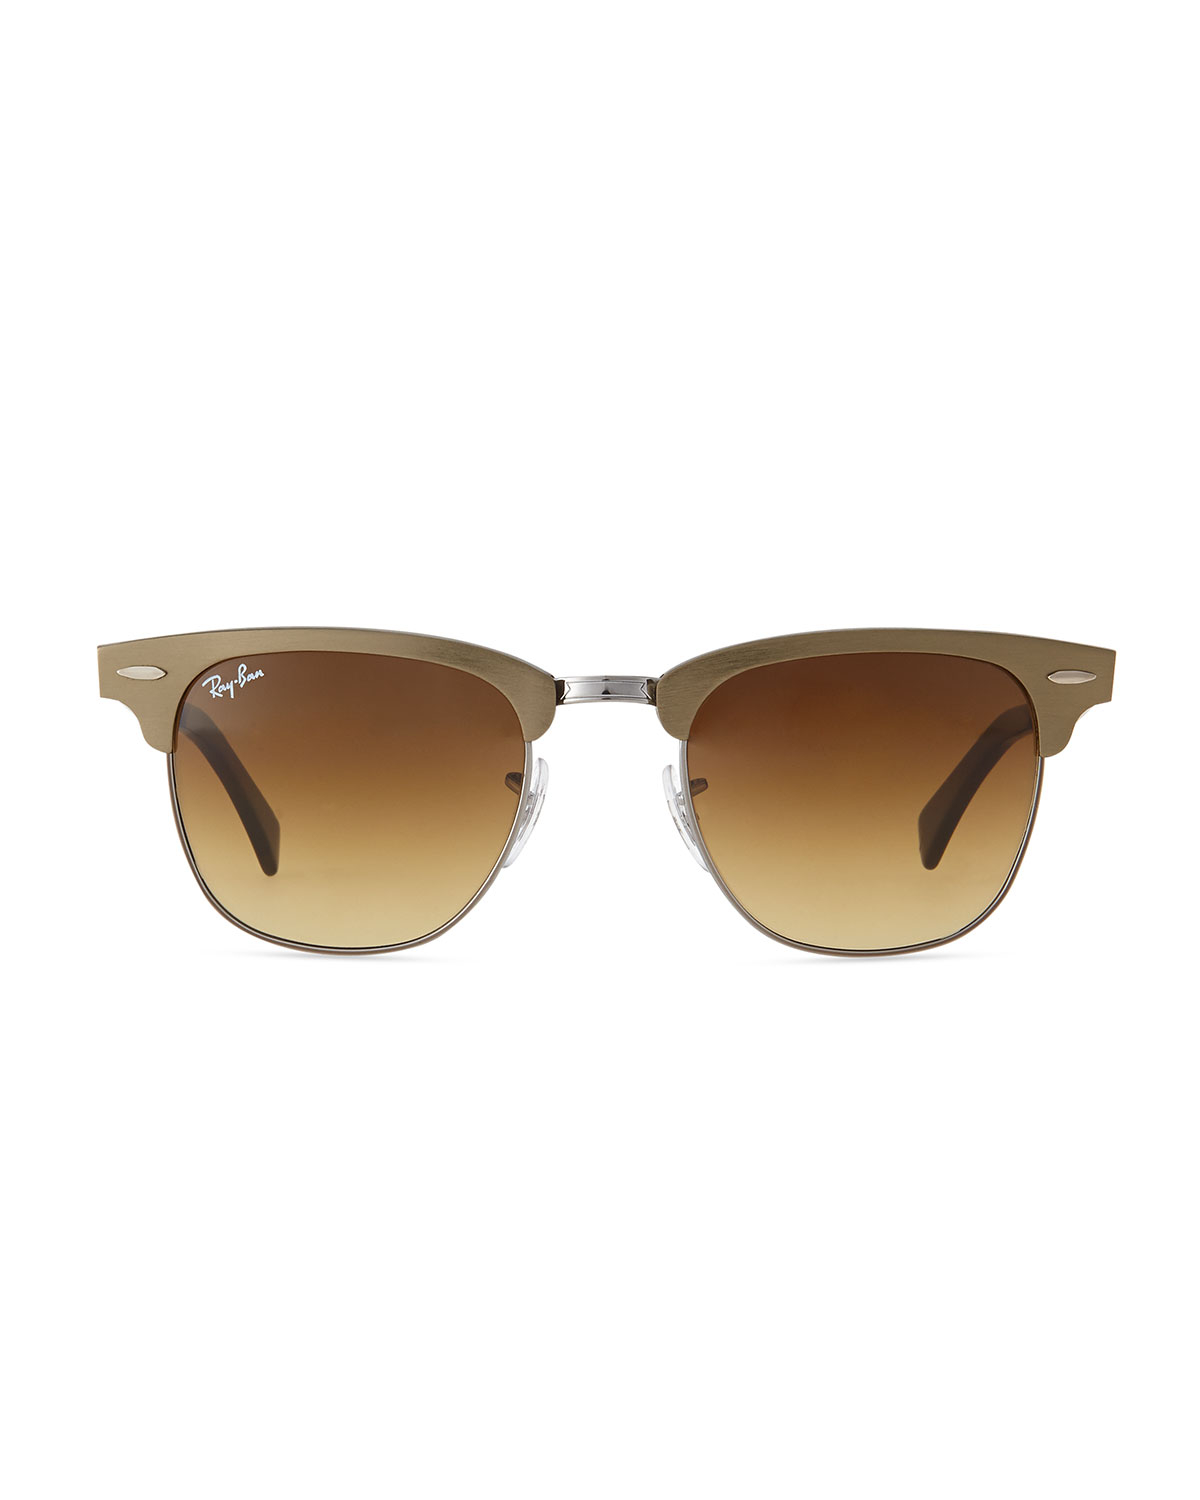 Ray Ban Gold Frame Glasses